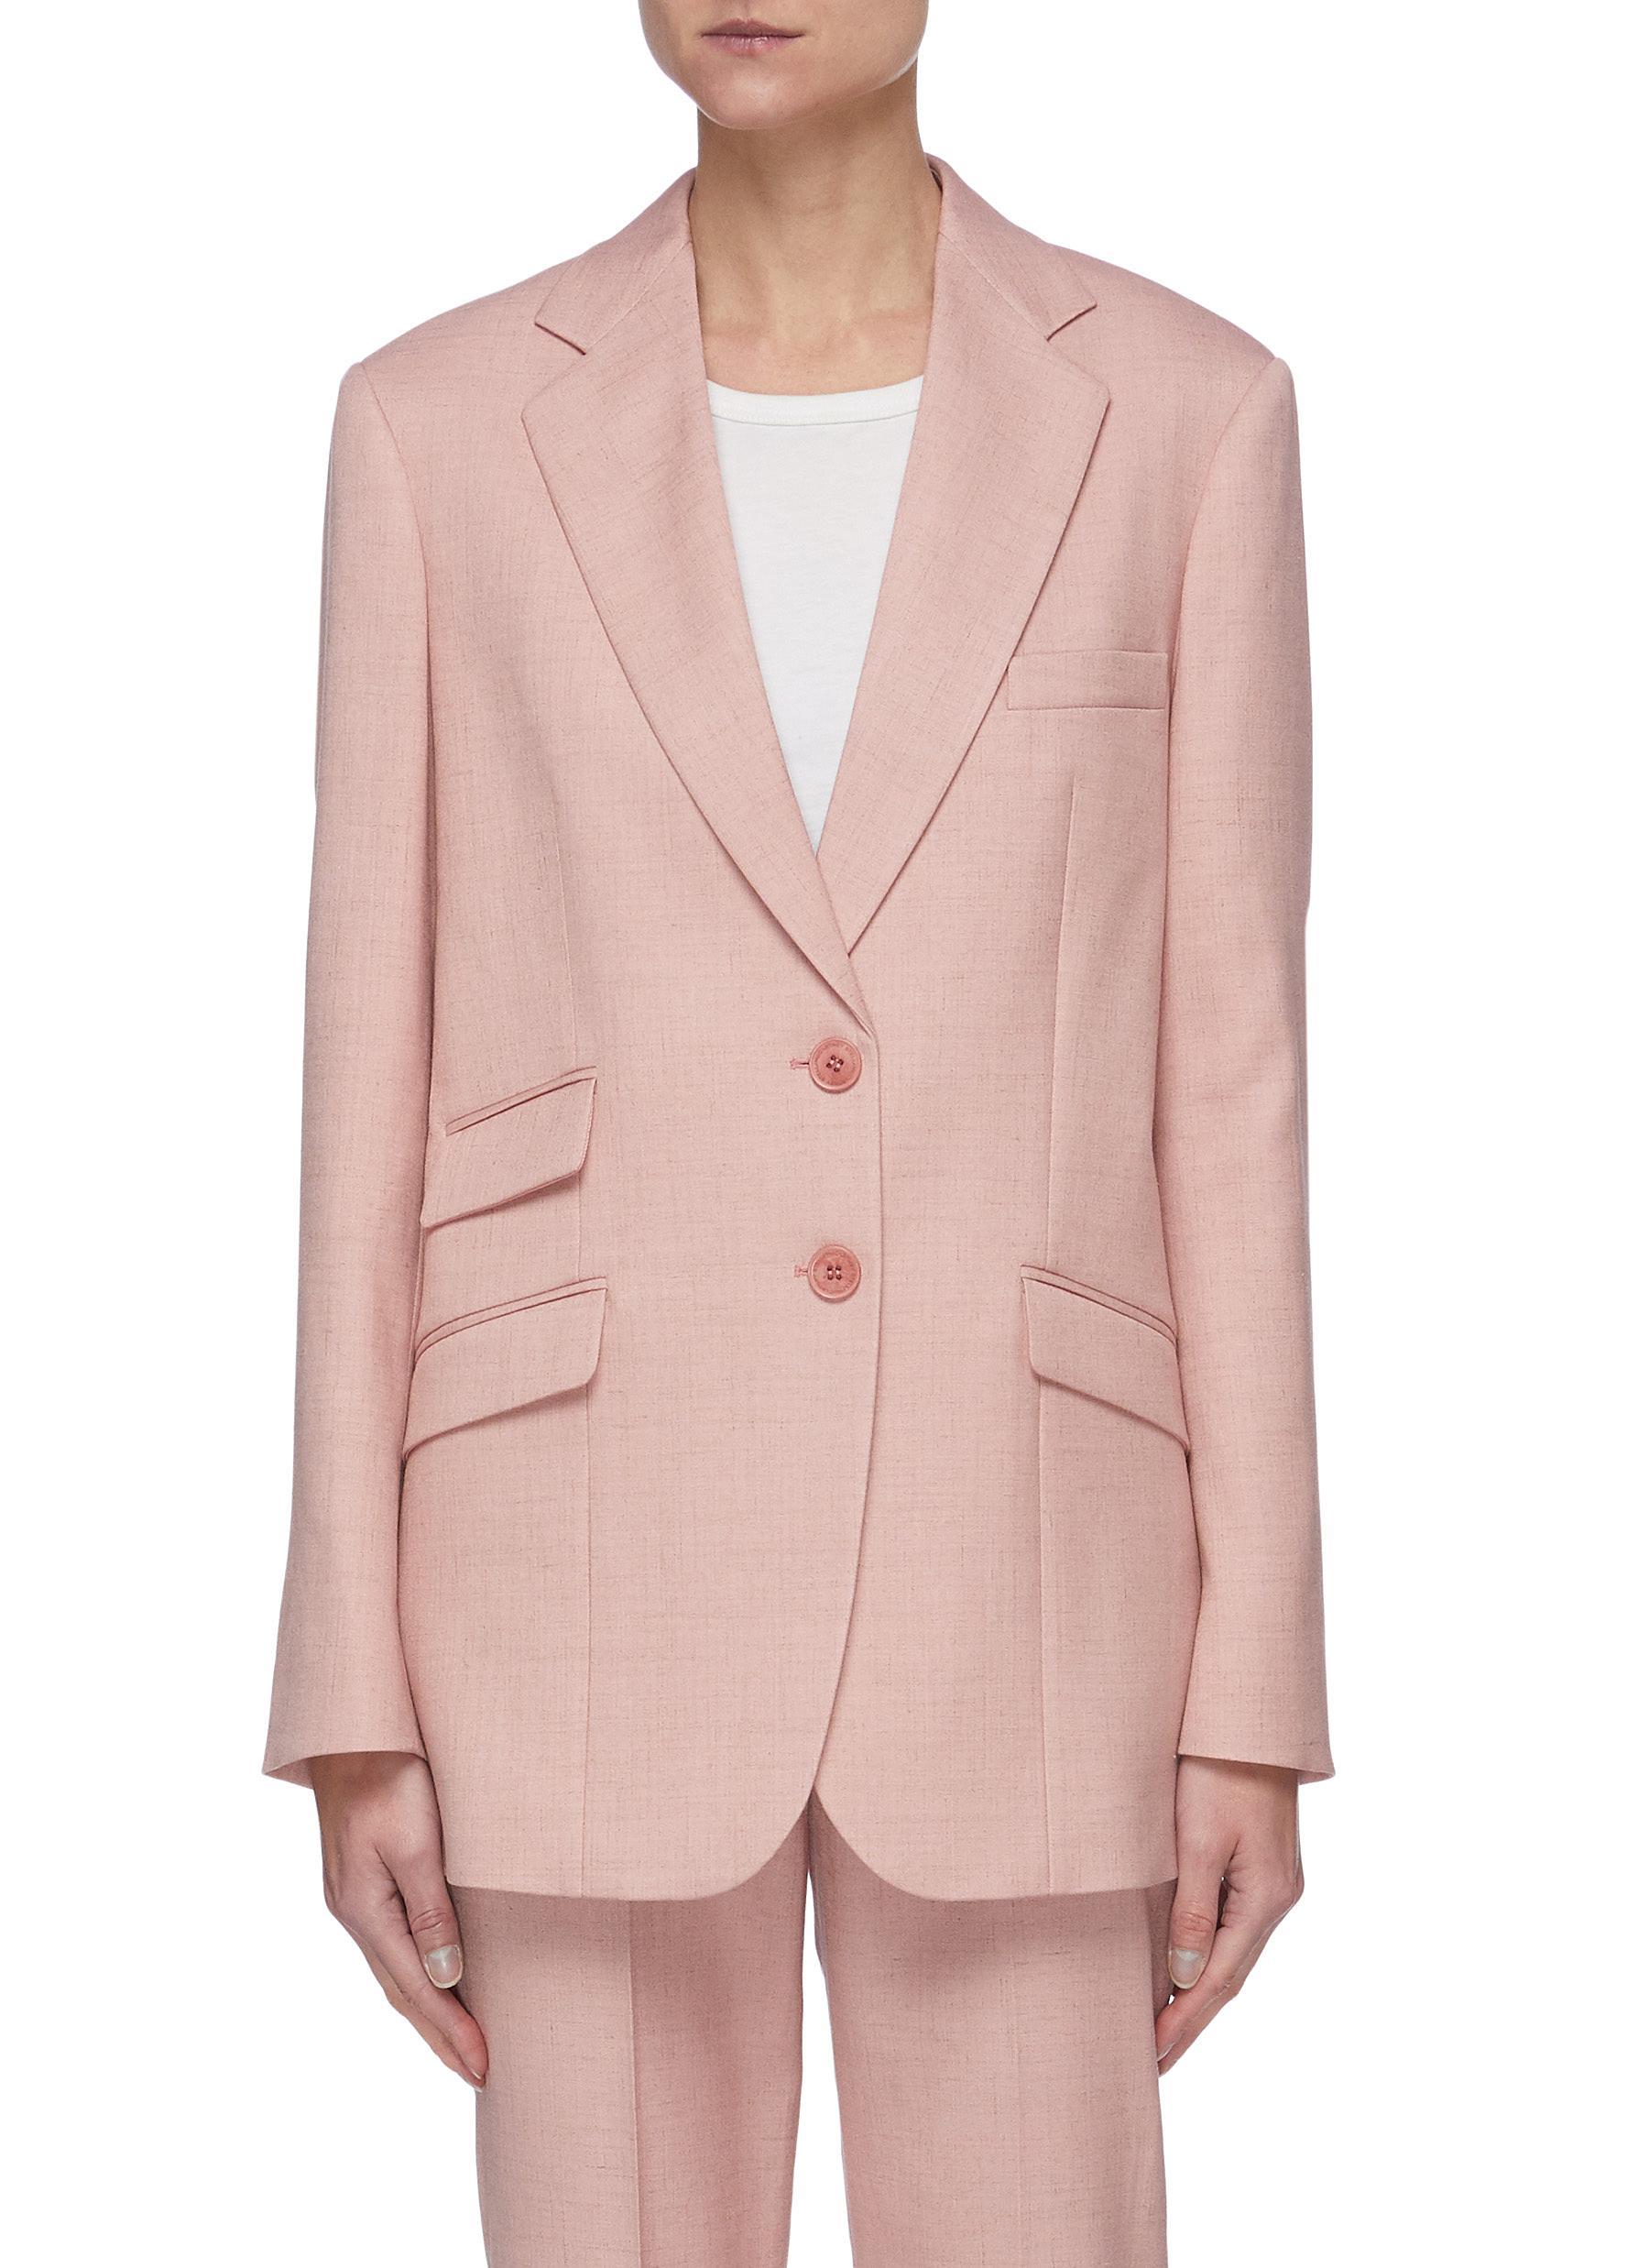 Stella Mccartney 'ABBY' SINGLE BREASTED BLAZER